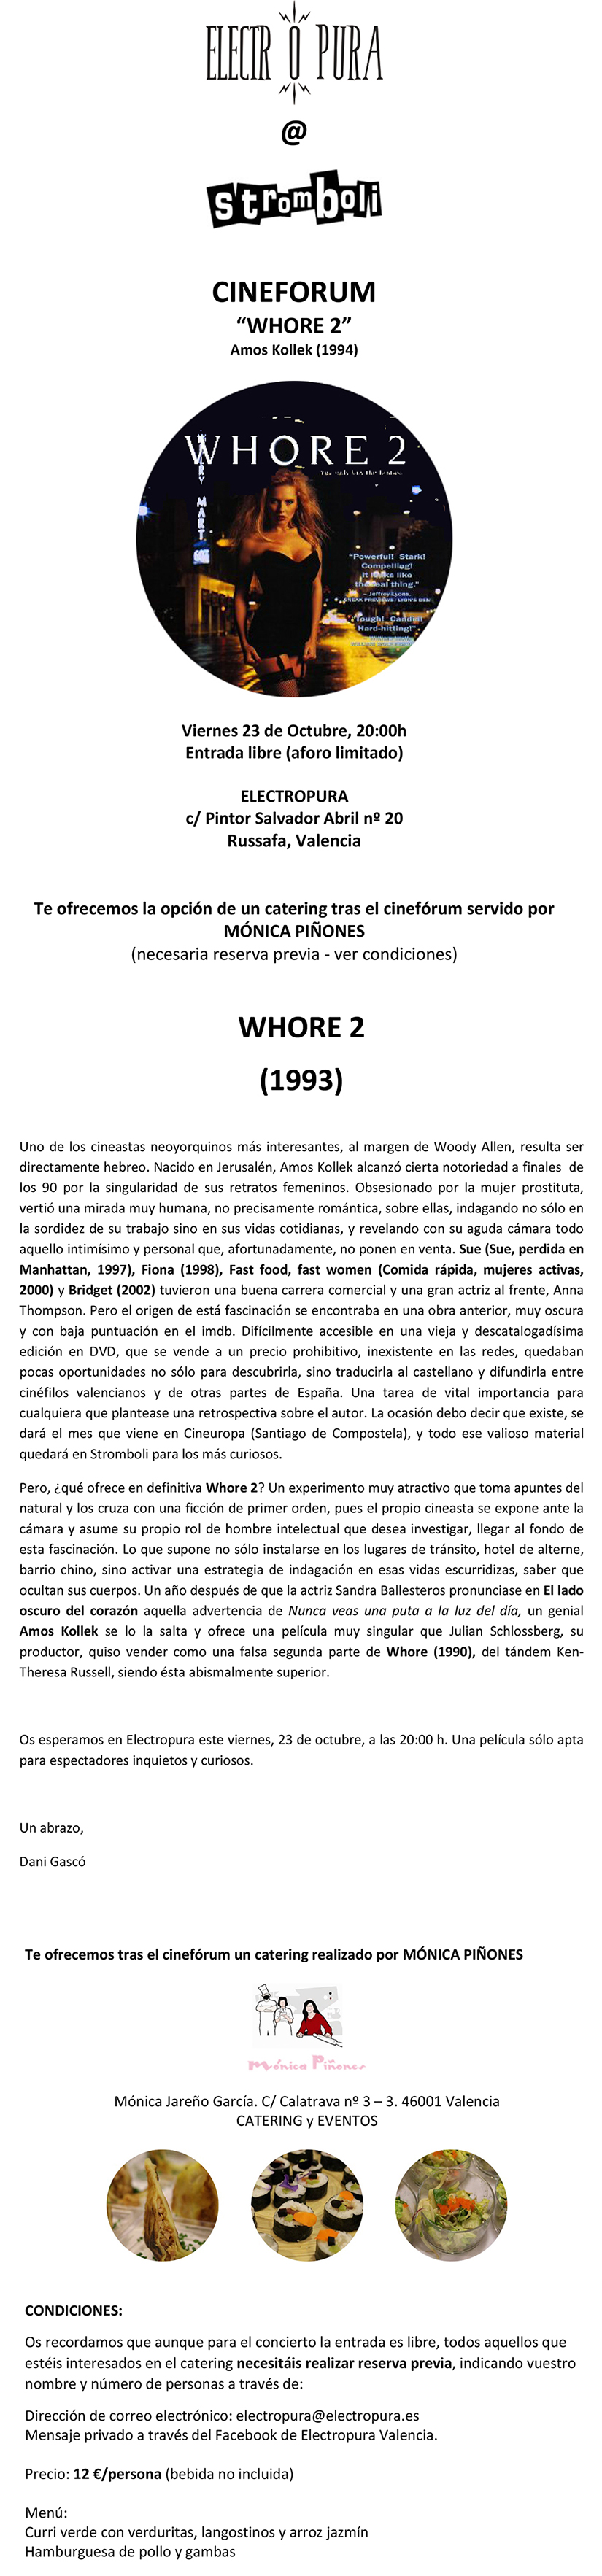 2015-10-23_CINEFORUM_WHORE 2_TEXTO